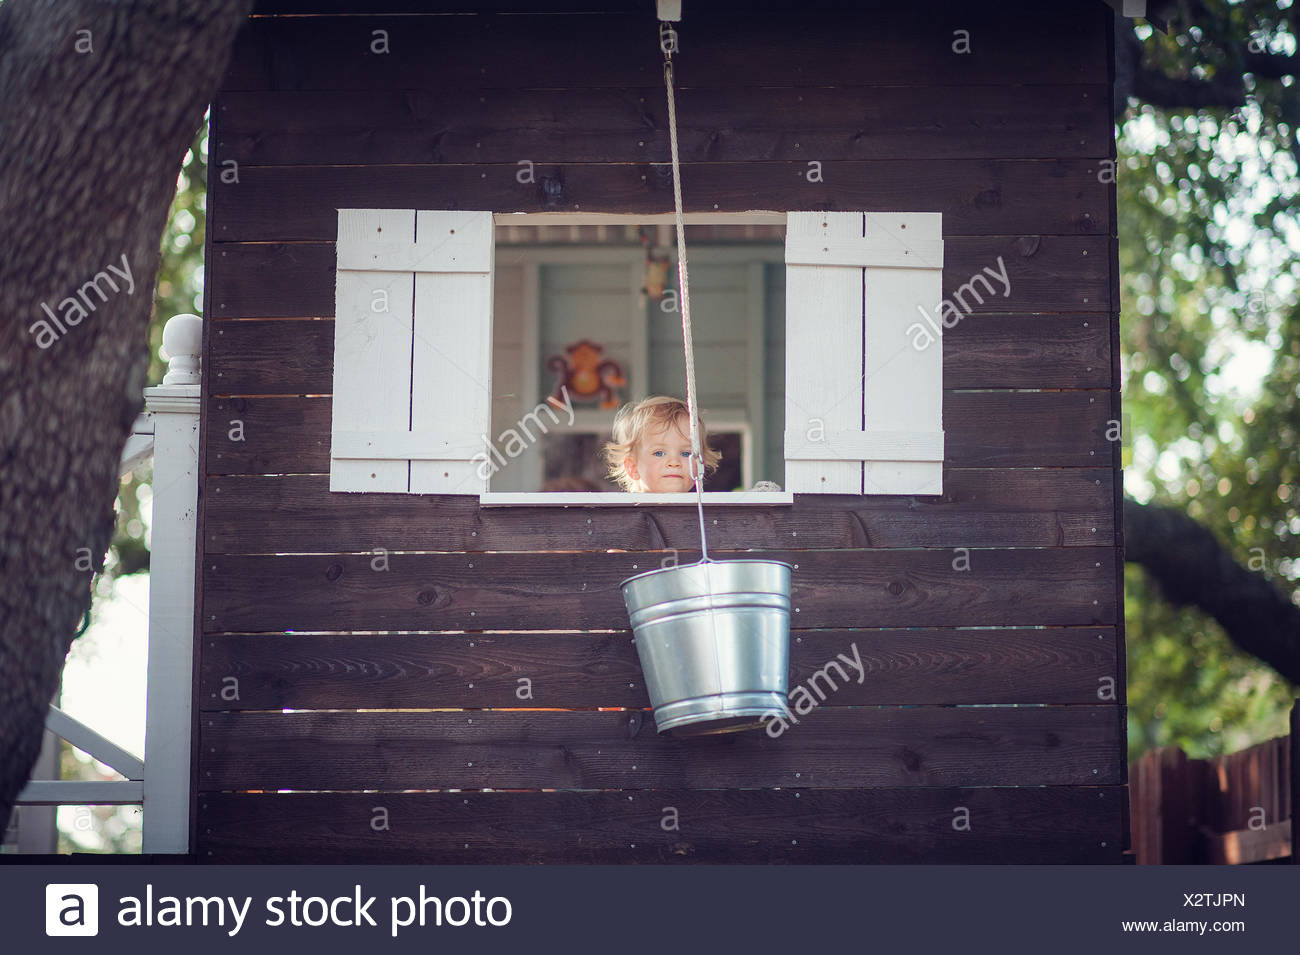 Boy in tree house looking out of the window - Stock Image